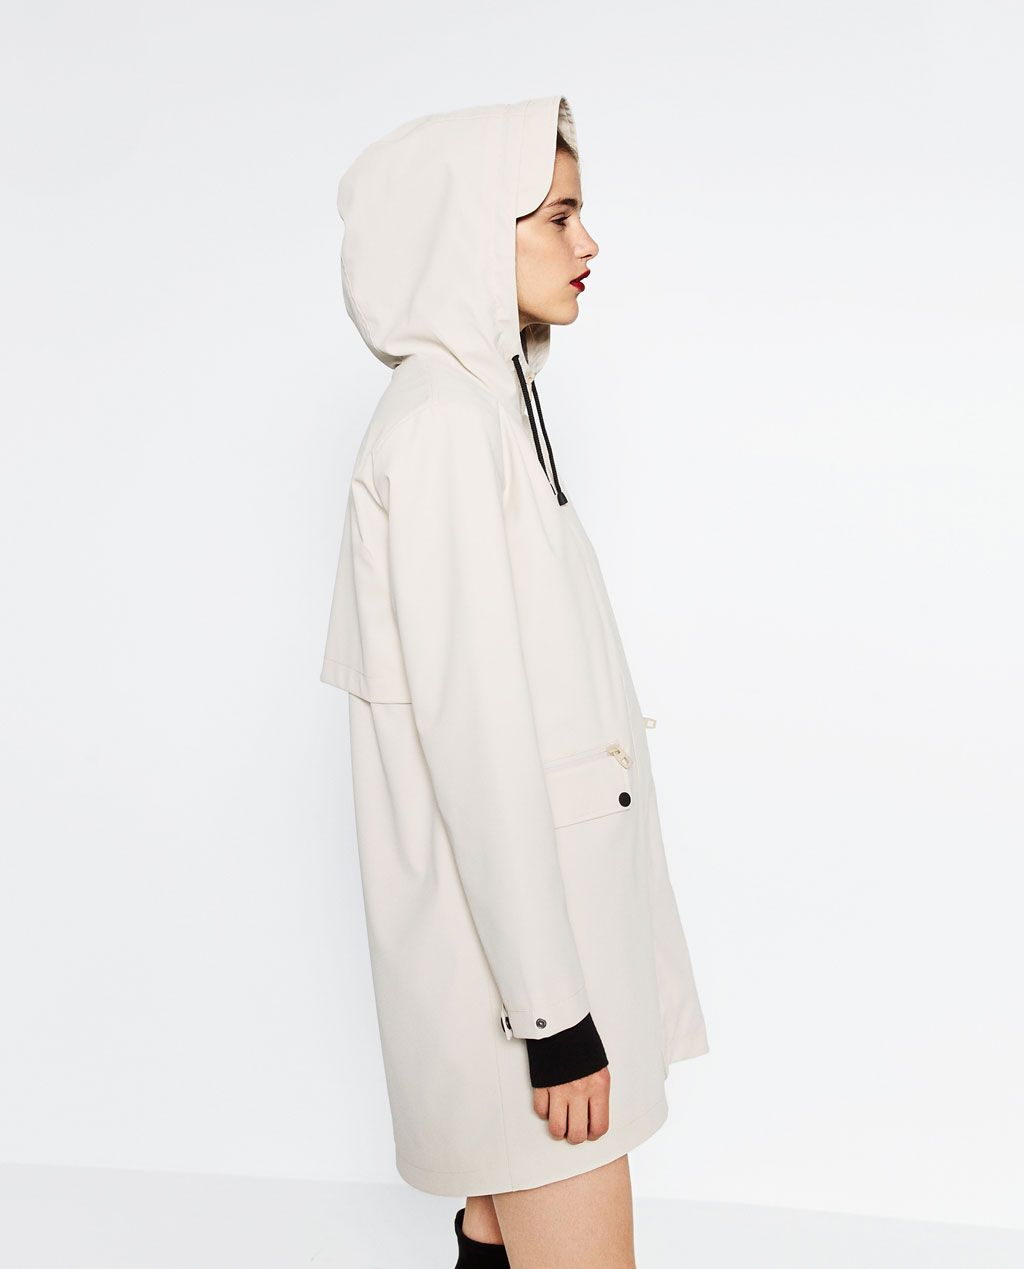 2a5529351 WATER REPELLENT RAINCOAT-OUTERWEAR-WOMAN   ZARA United States   To ...